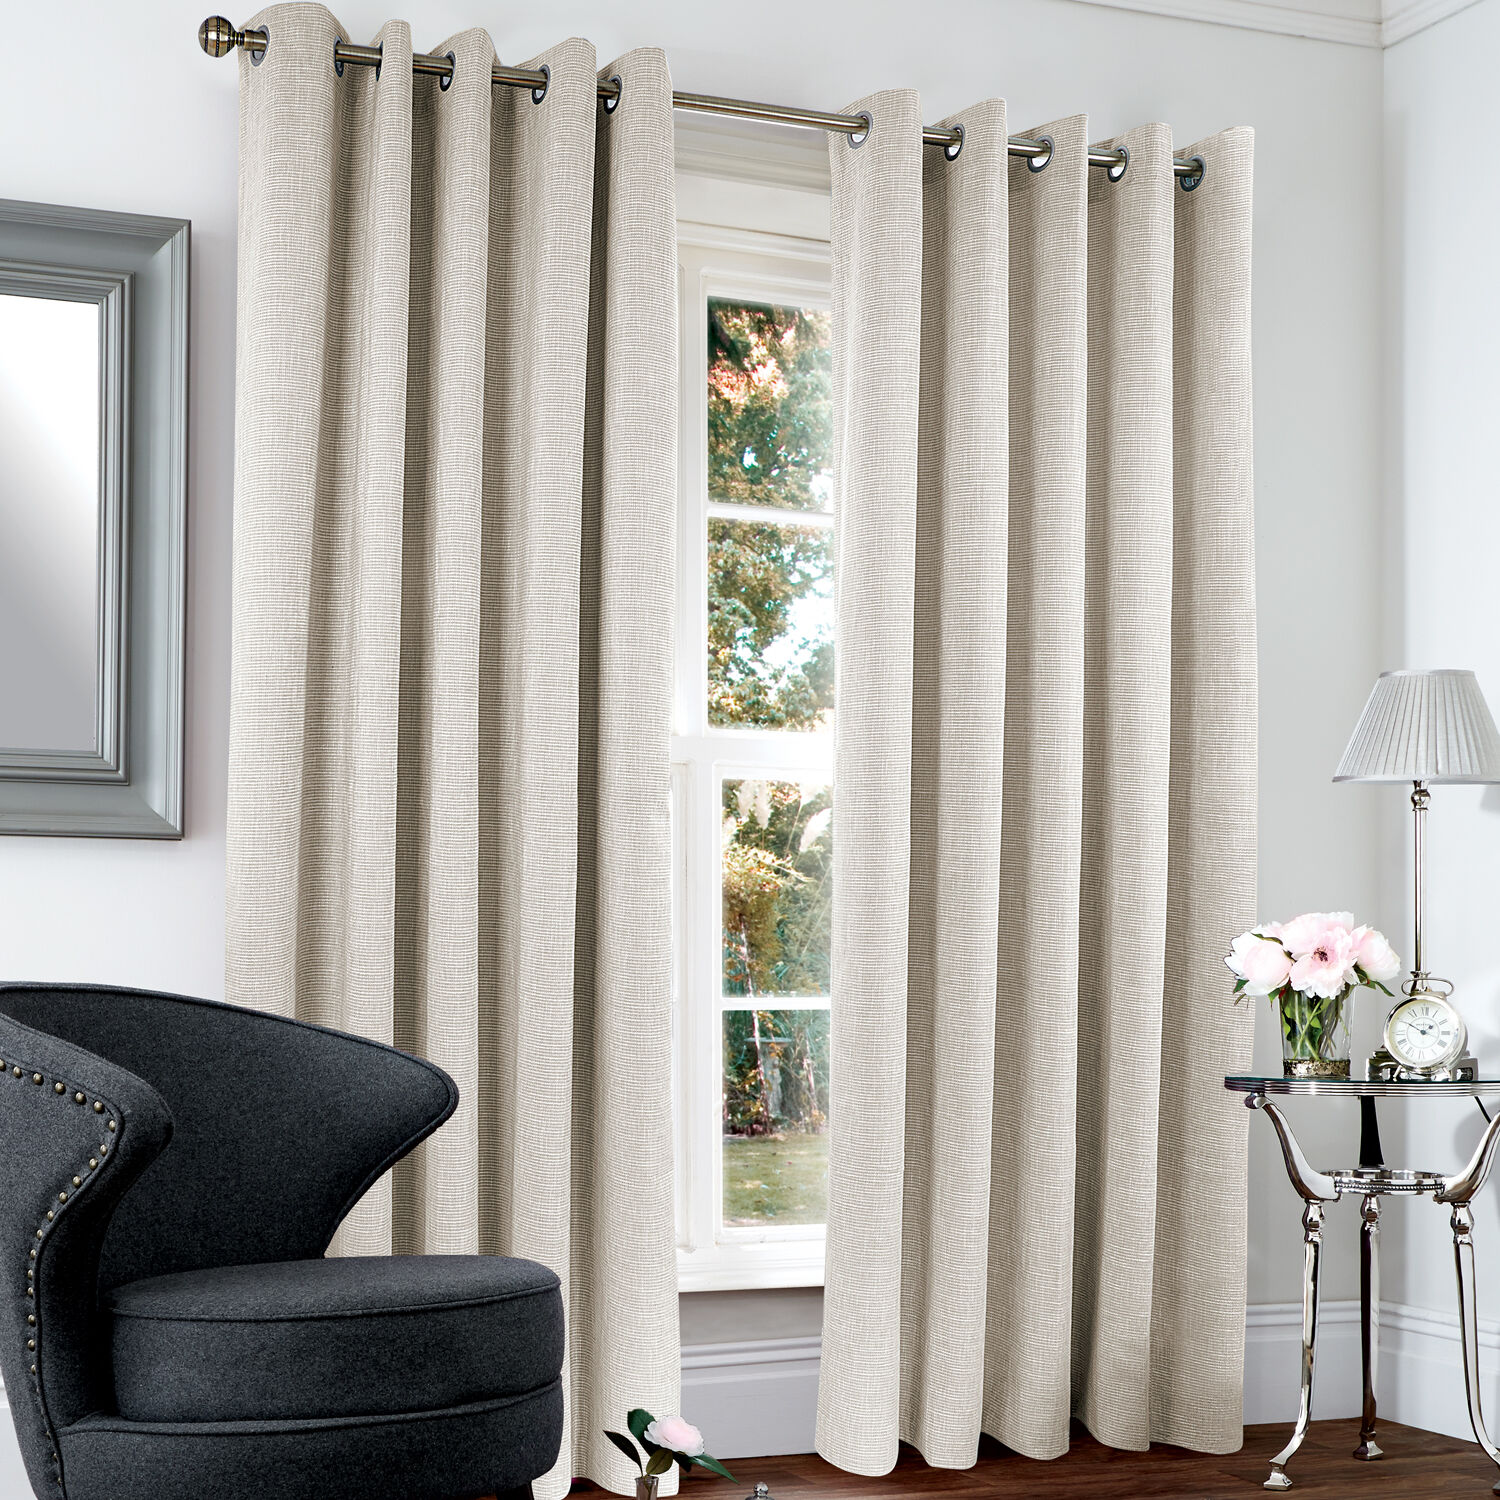 Blackout  Thermal Basketweave Curtains  Home Store  More